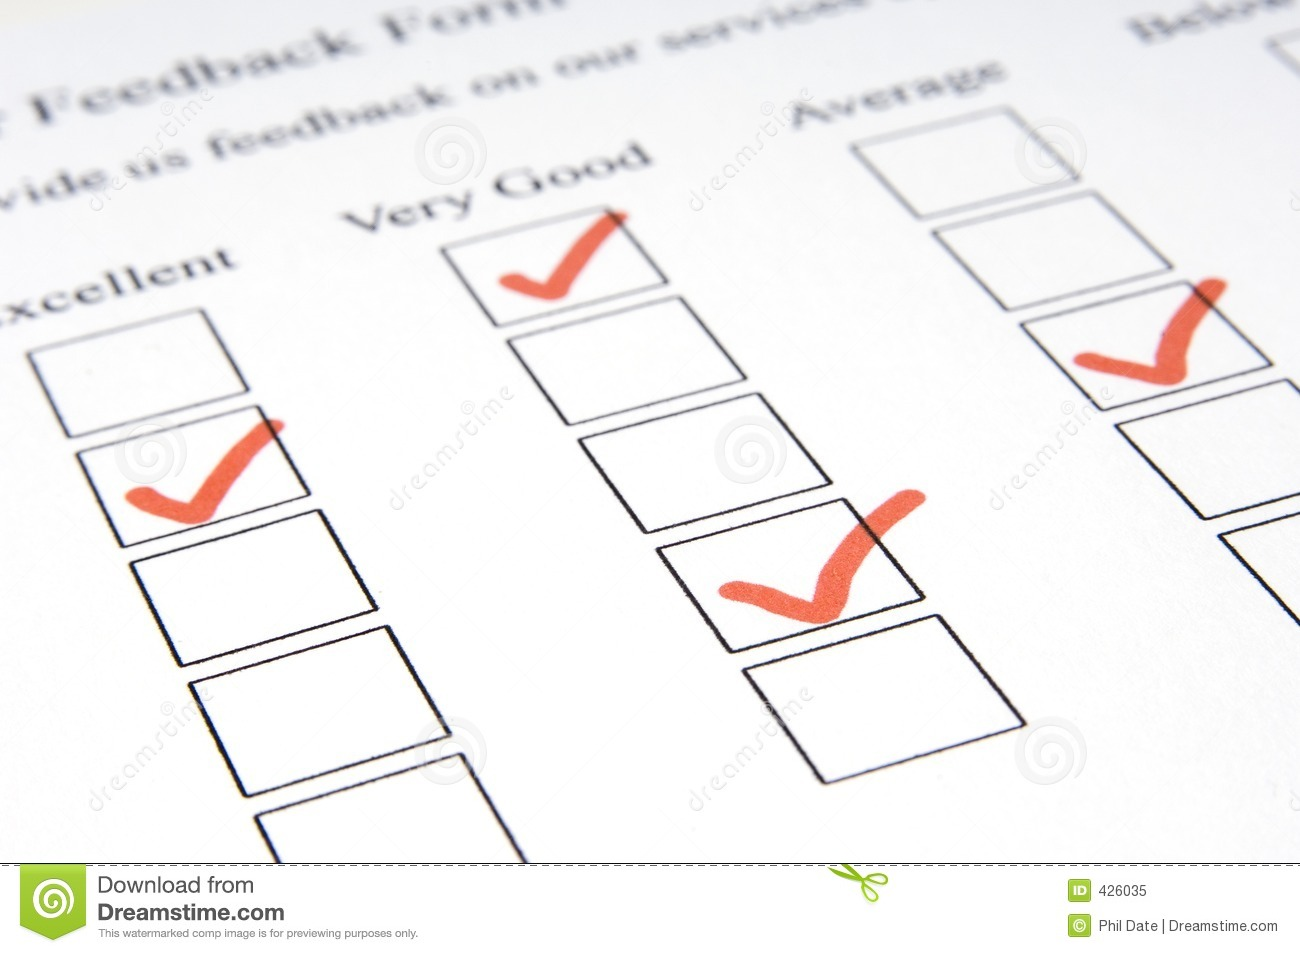 Feedback Form #3 stock image. Image of relations